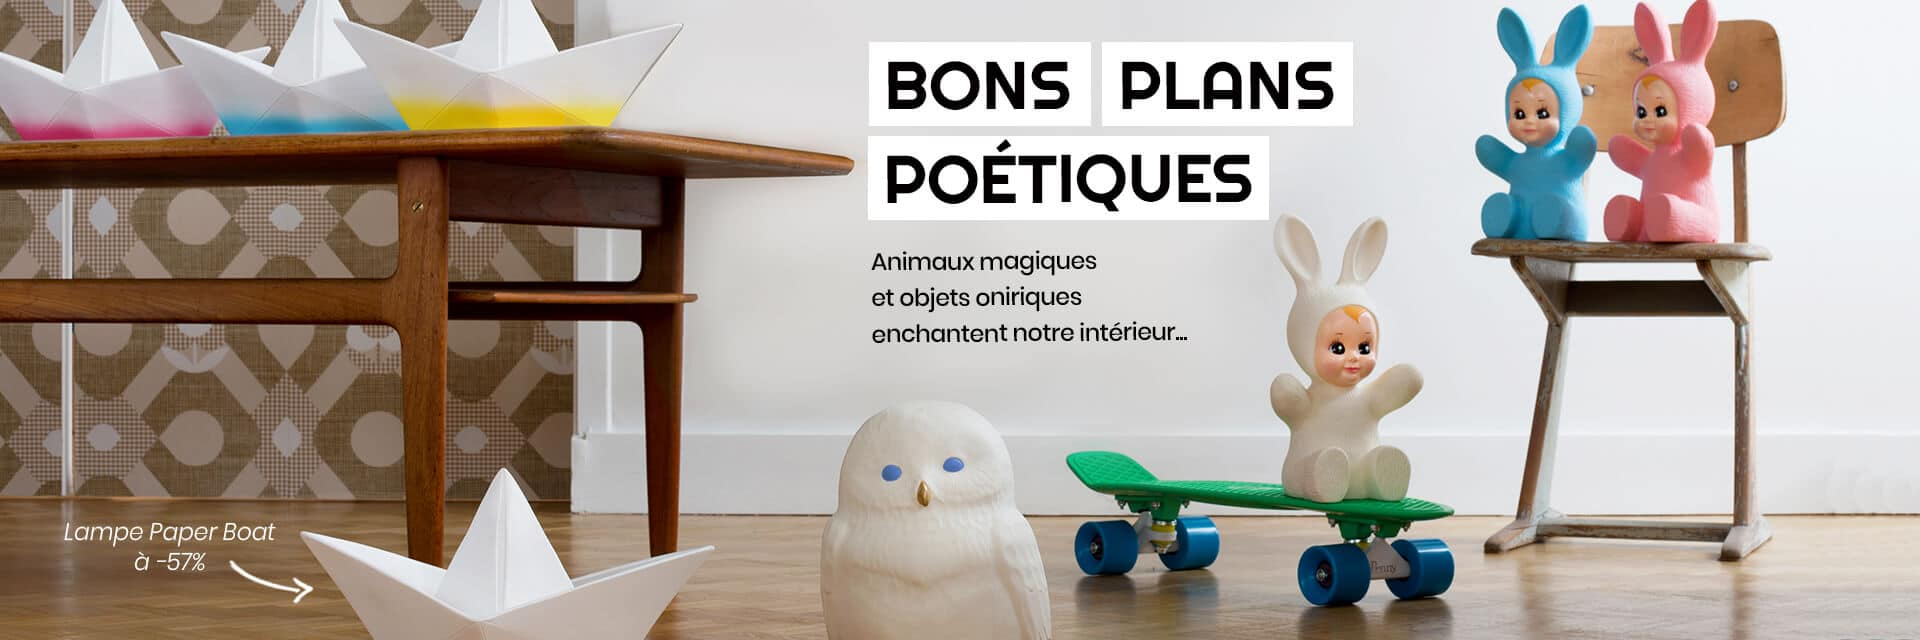 design poetique home page zeeloft